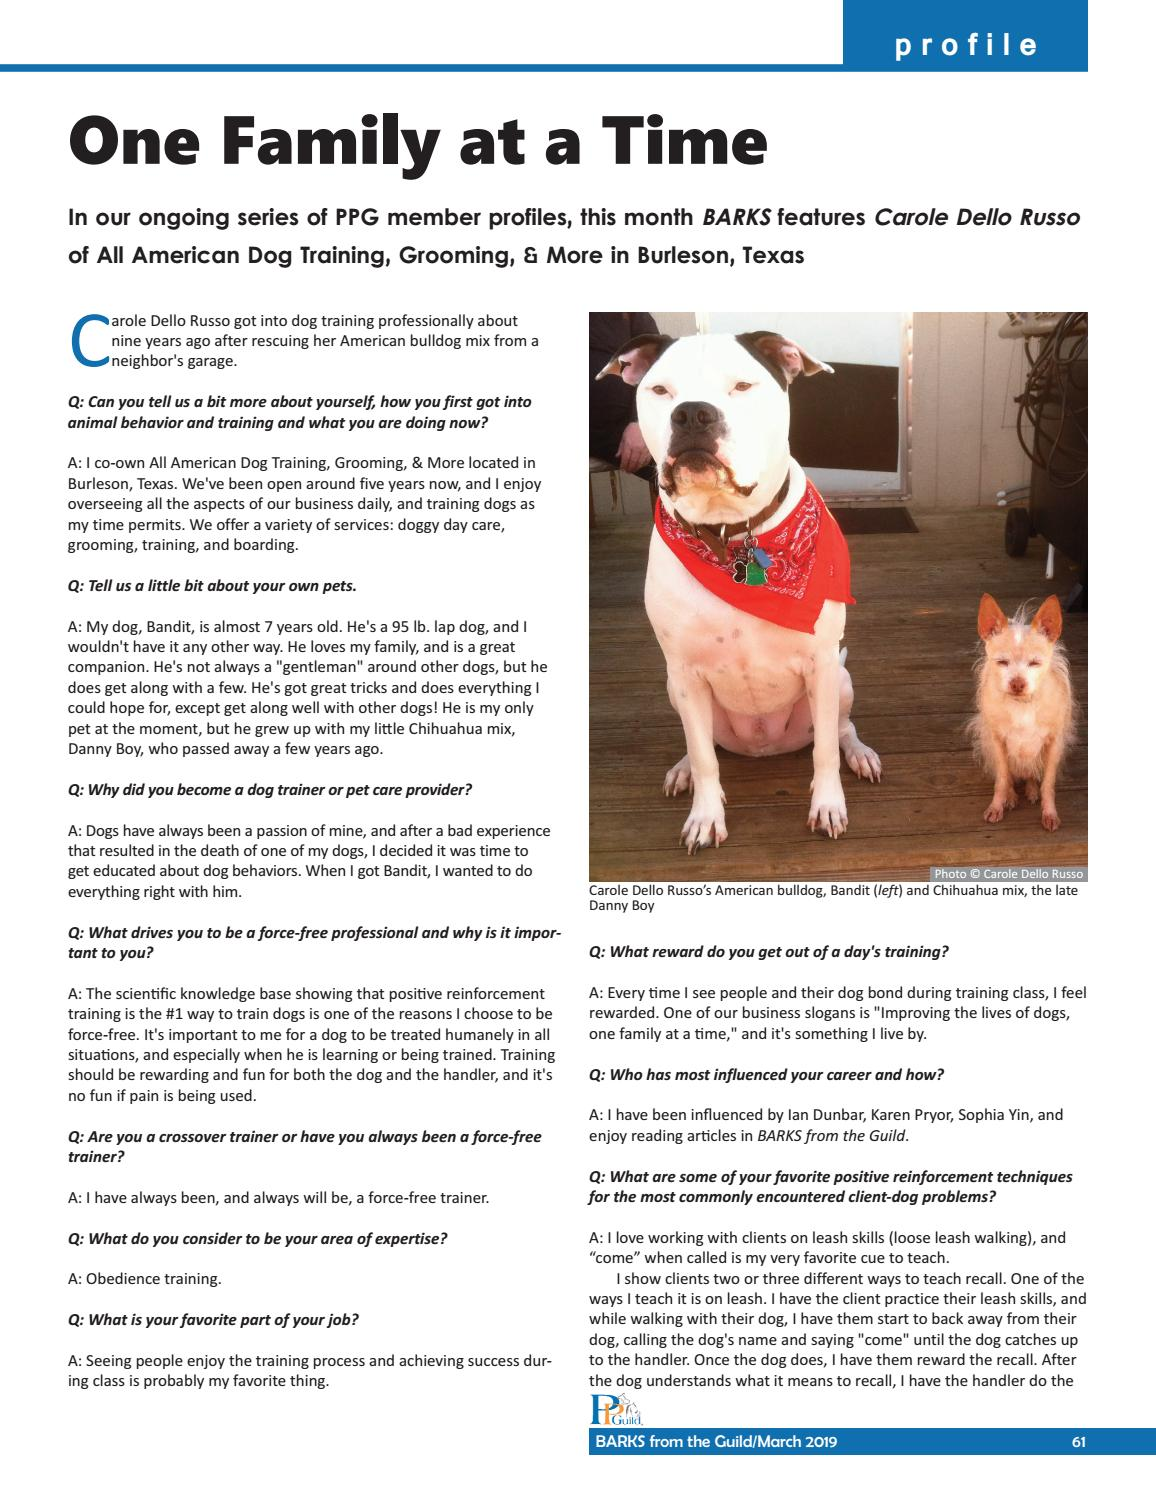 BARKS from the Guild March 2019 by The Pet Professional Guild - issuu